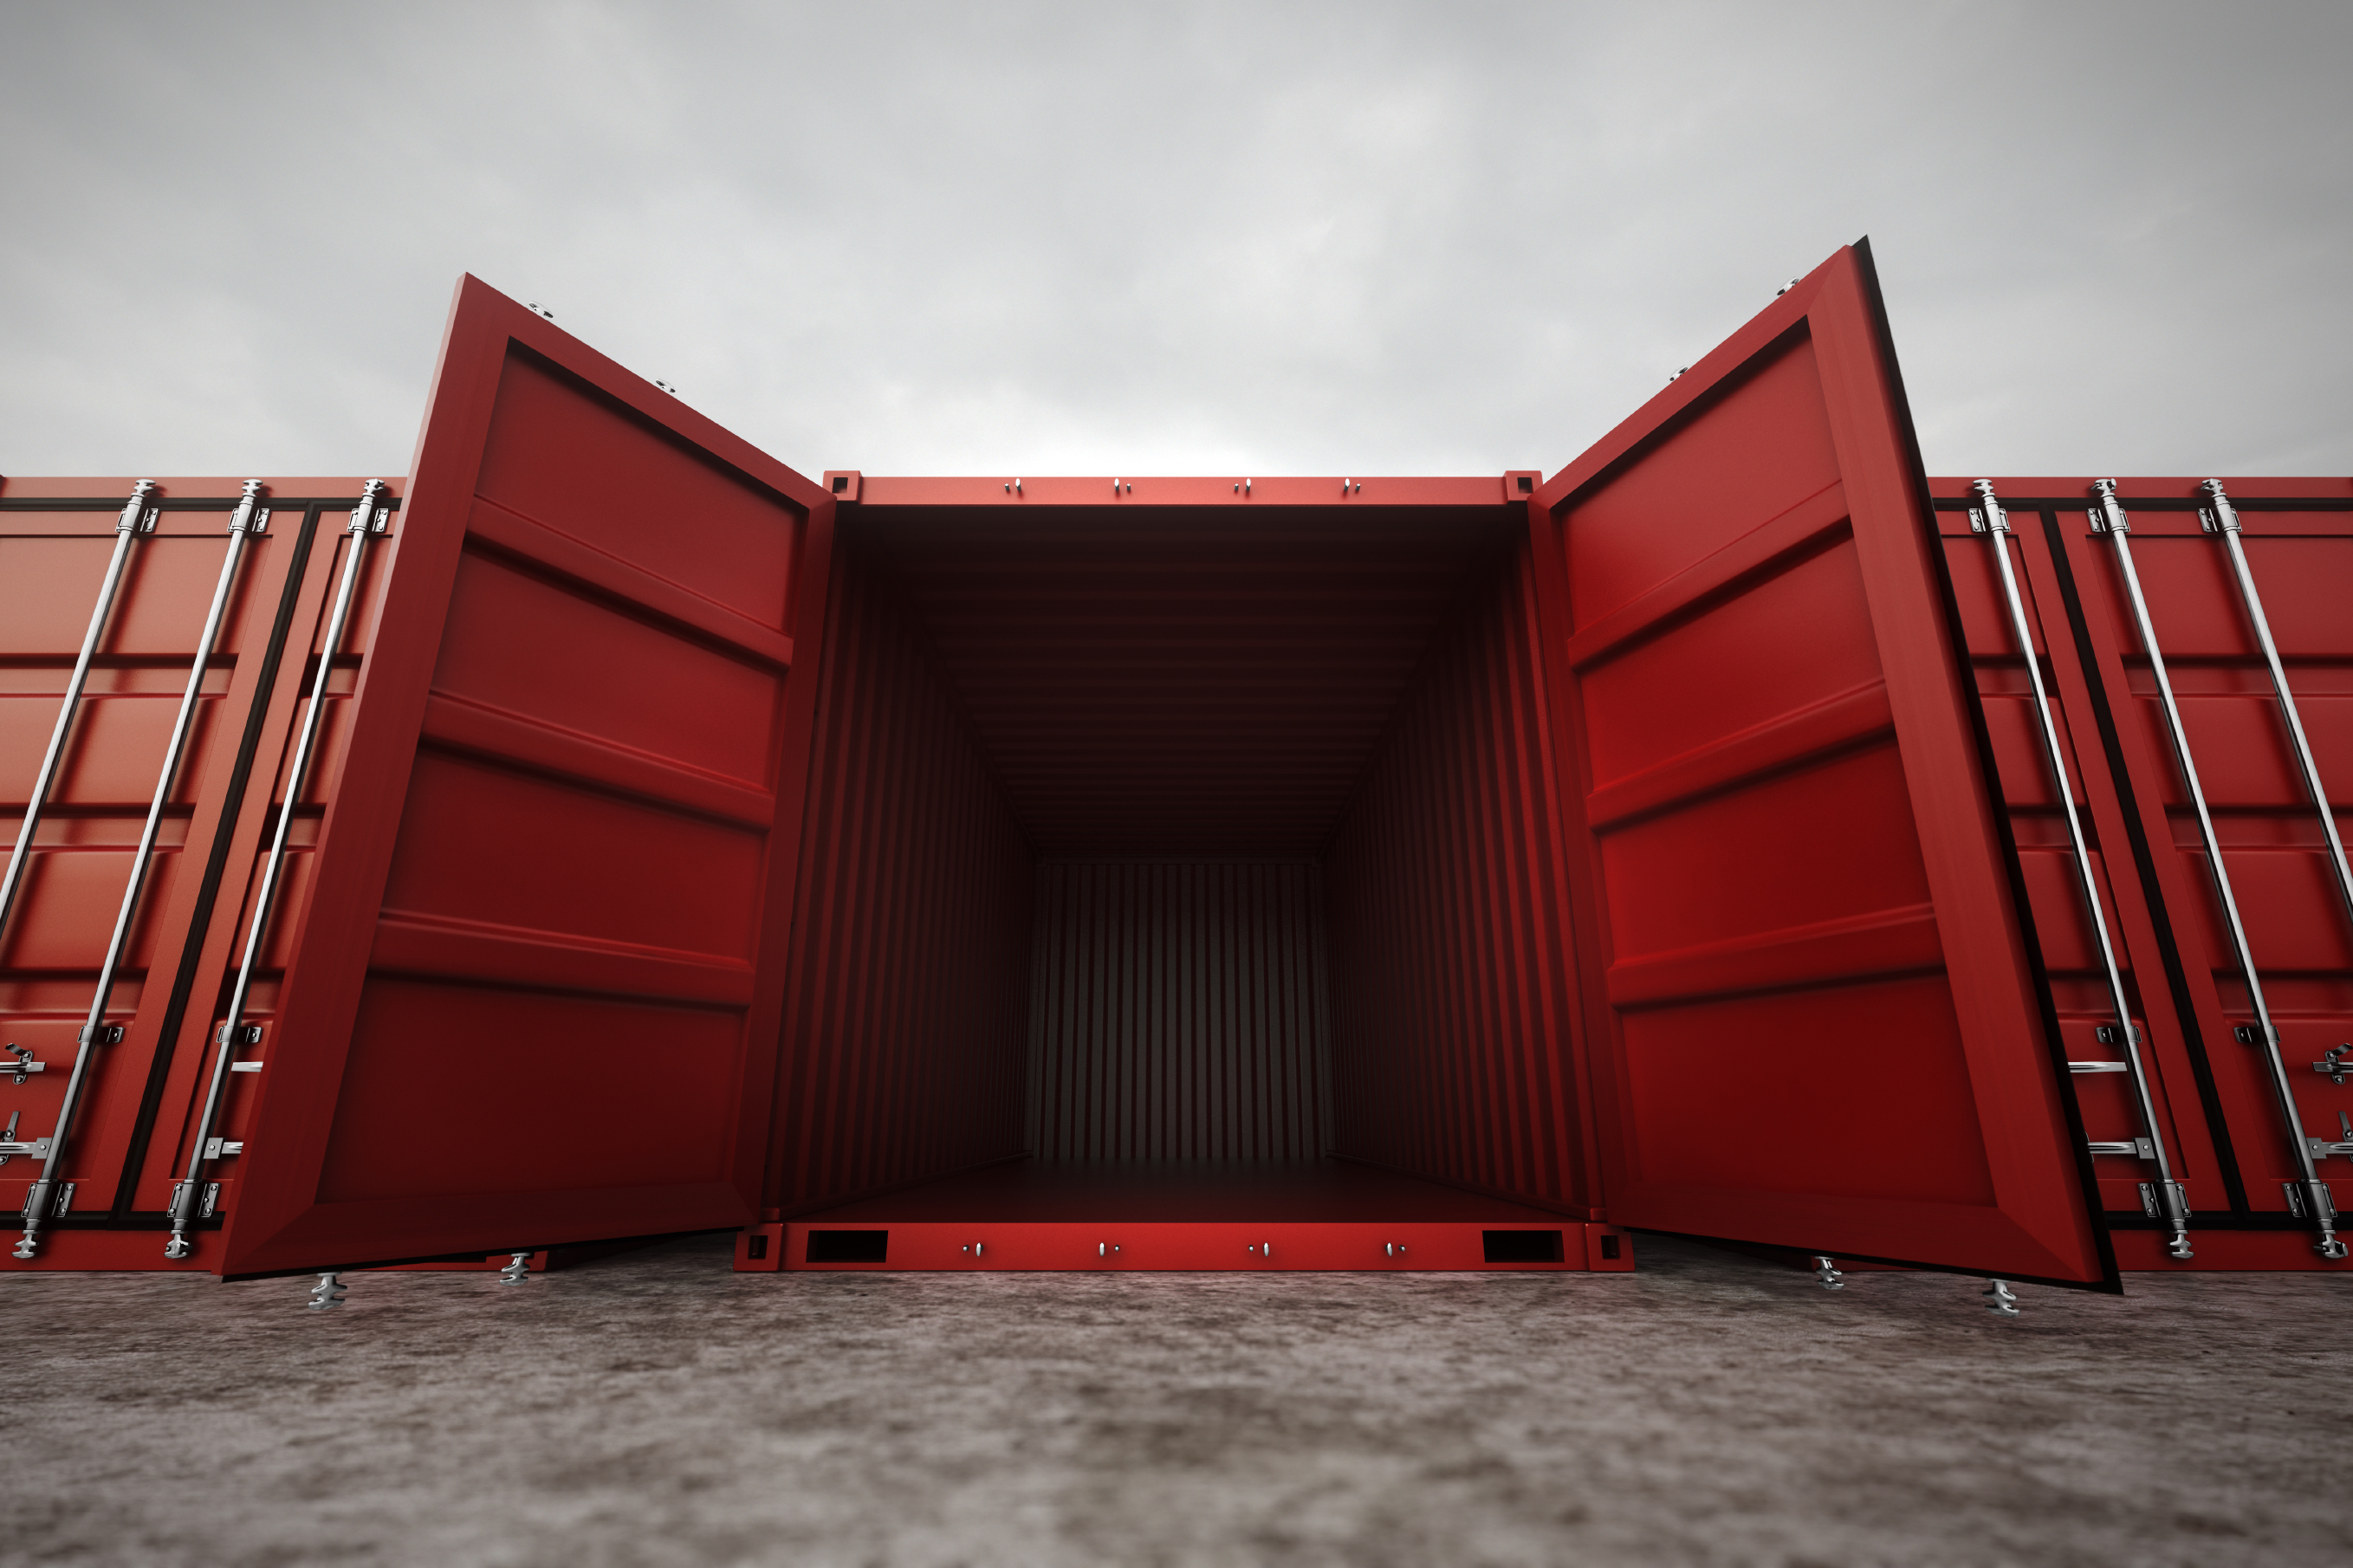 San Diego Storage Portable Shipping Containers For Rent